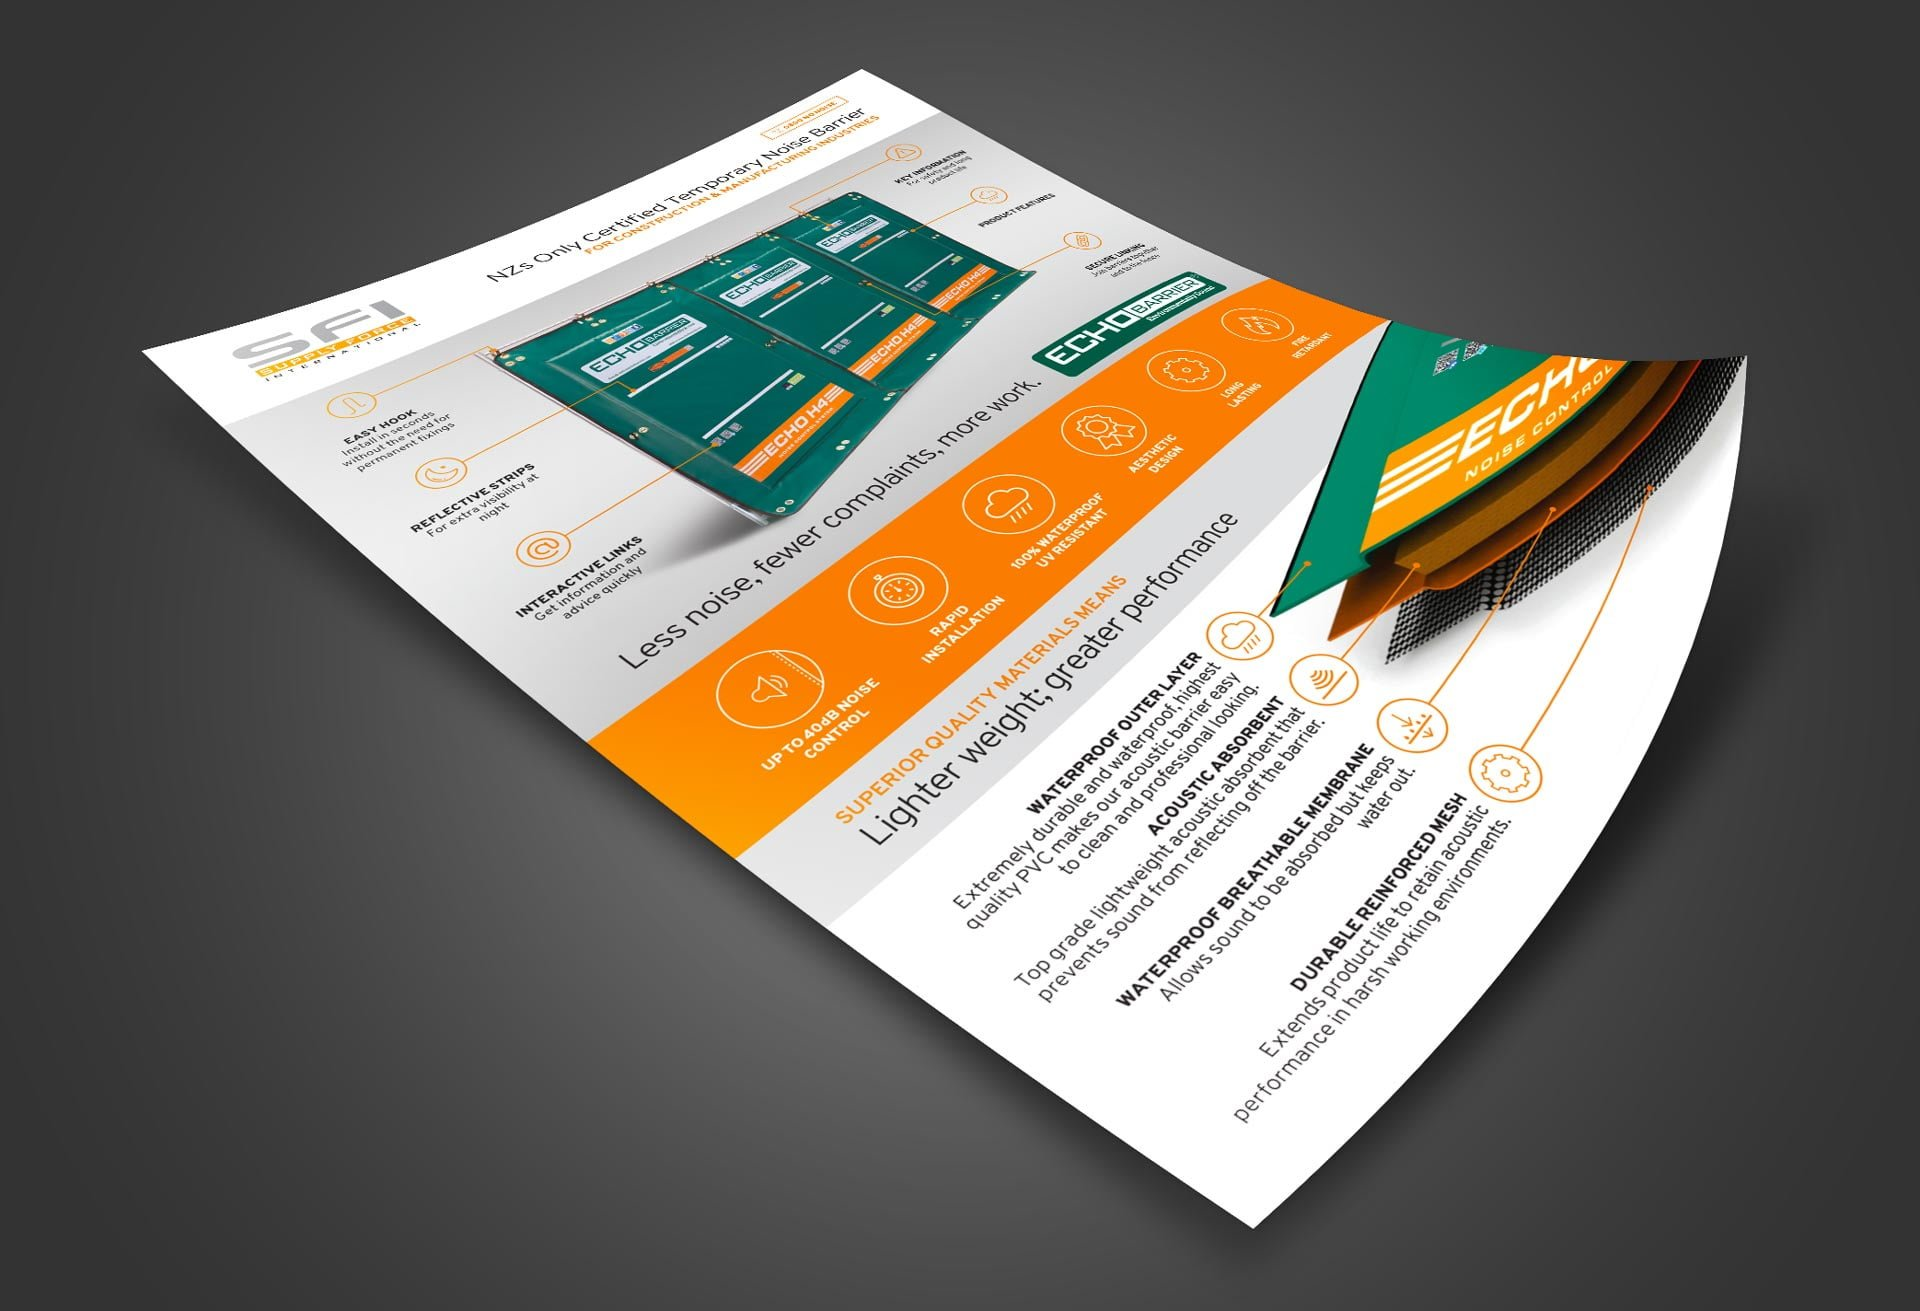 supplyforce-graphic-design